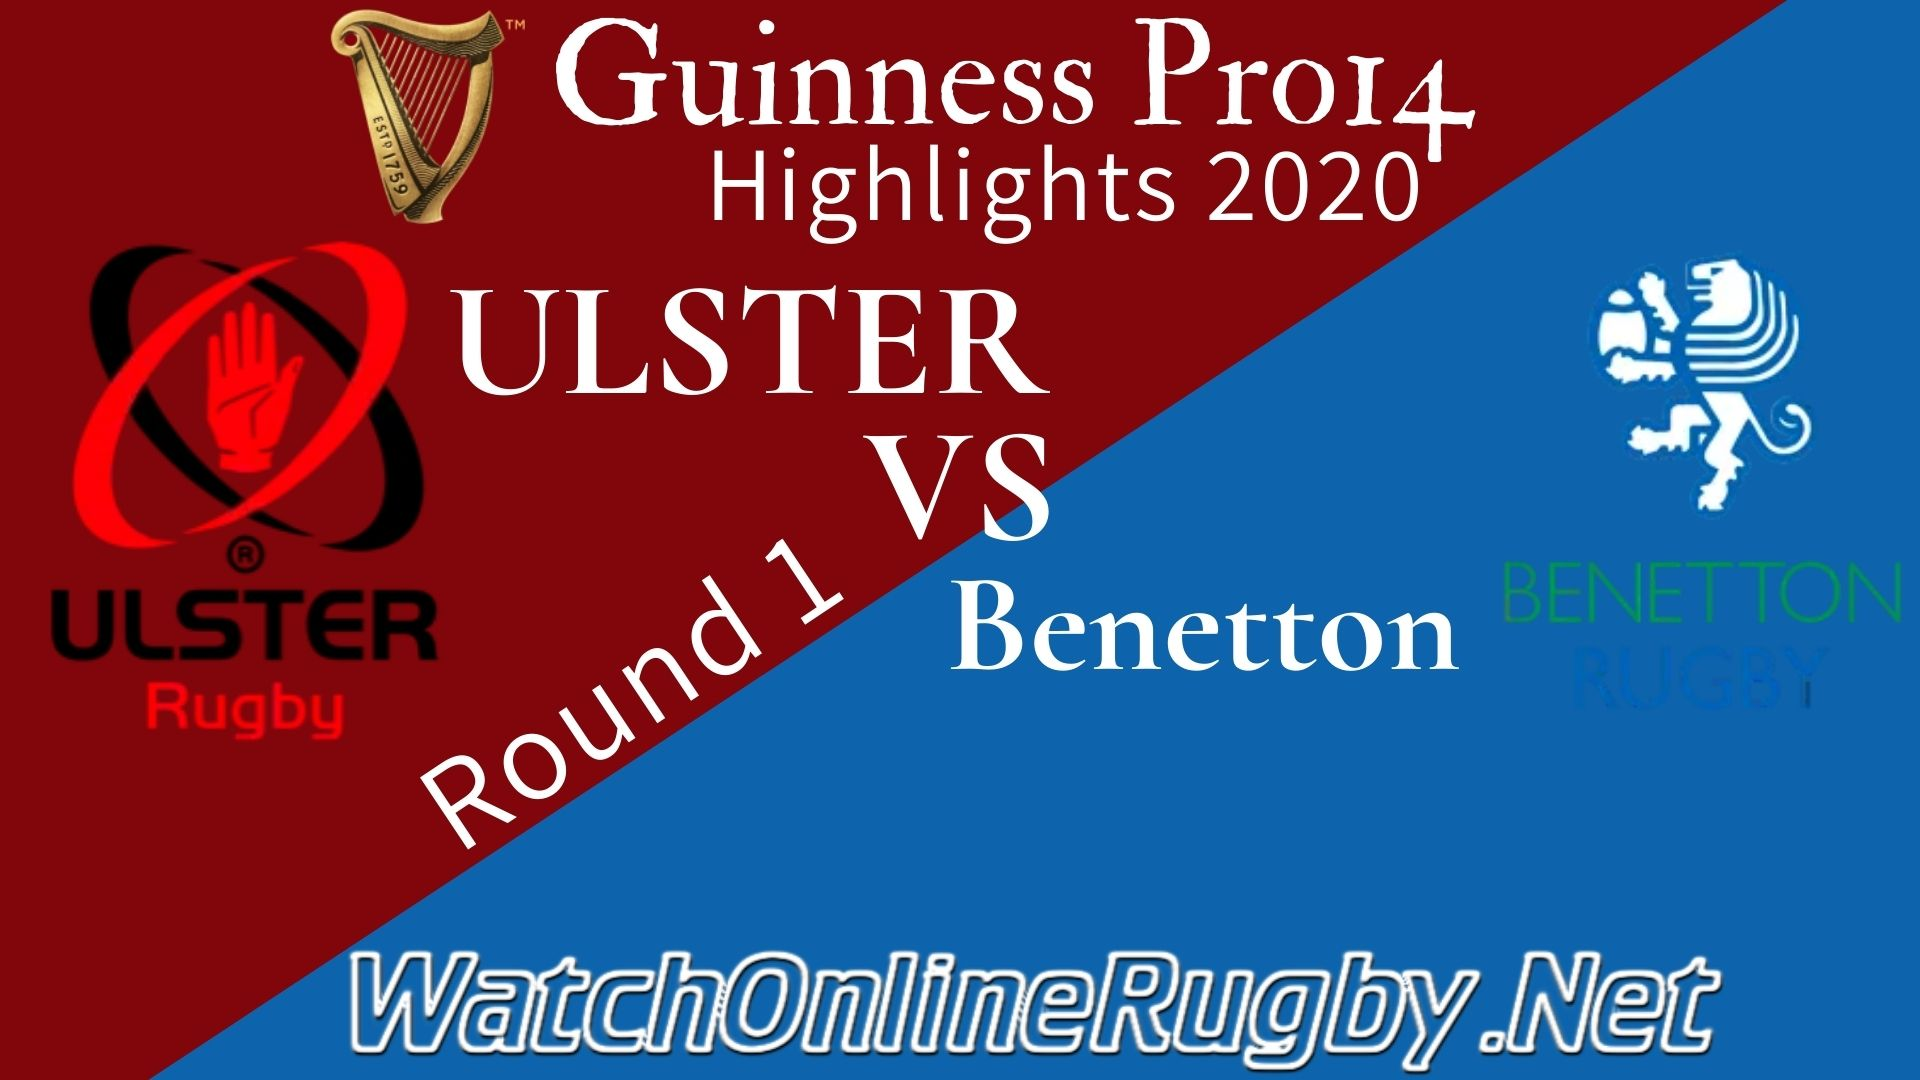 Ulster vs Benetton RD 1 Highlights 2020